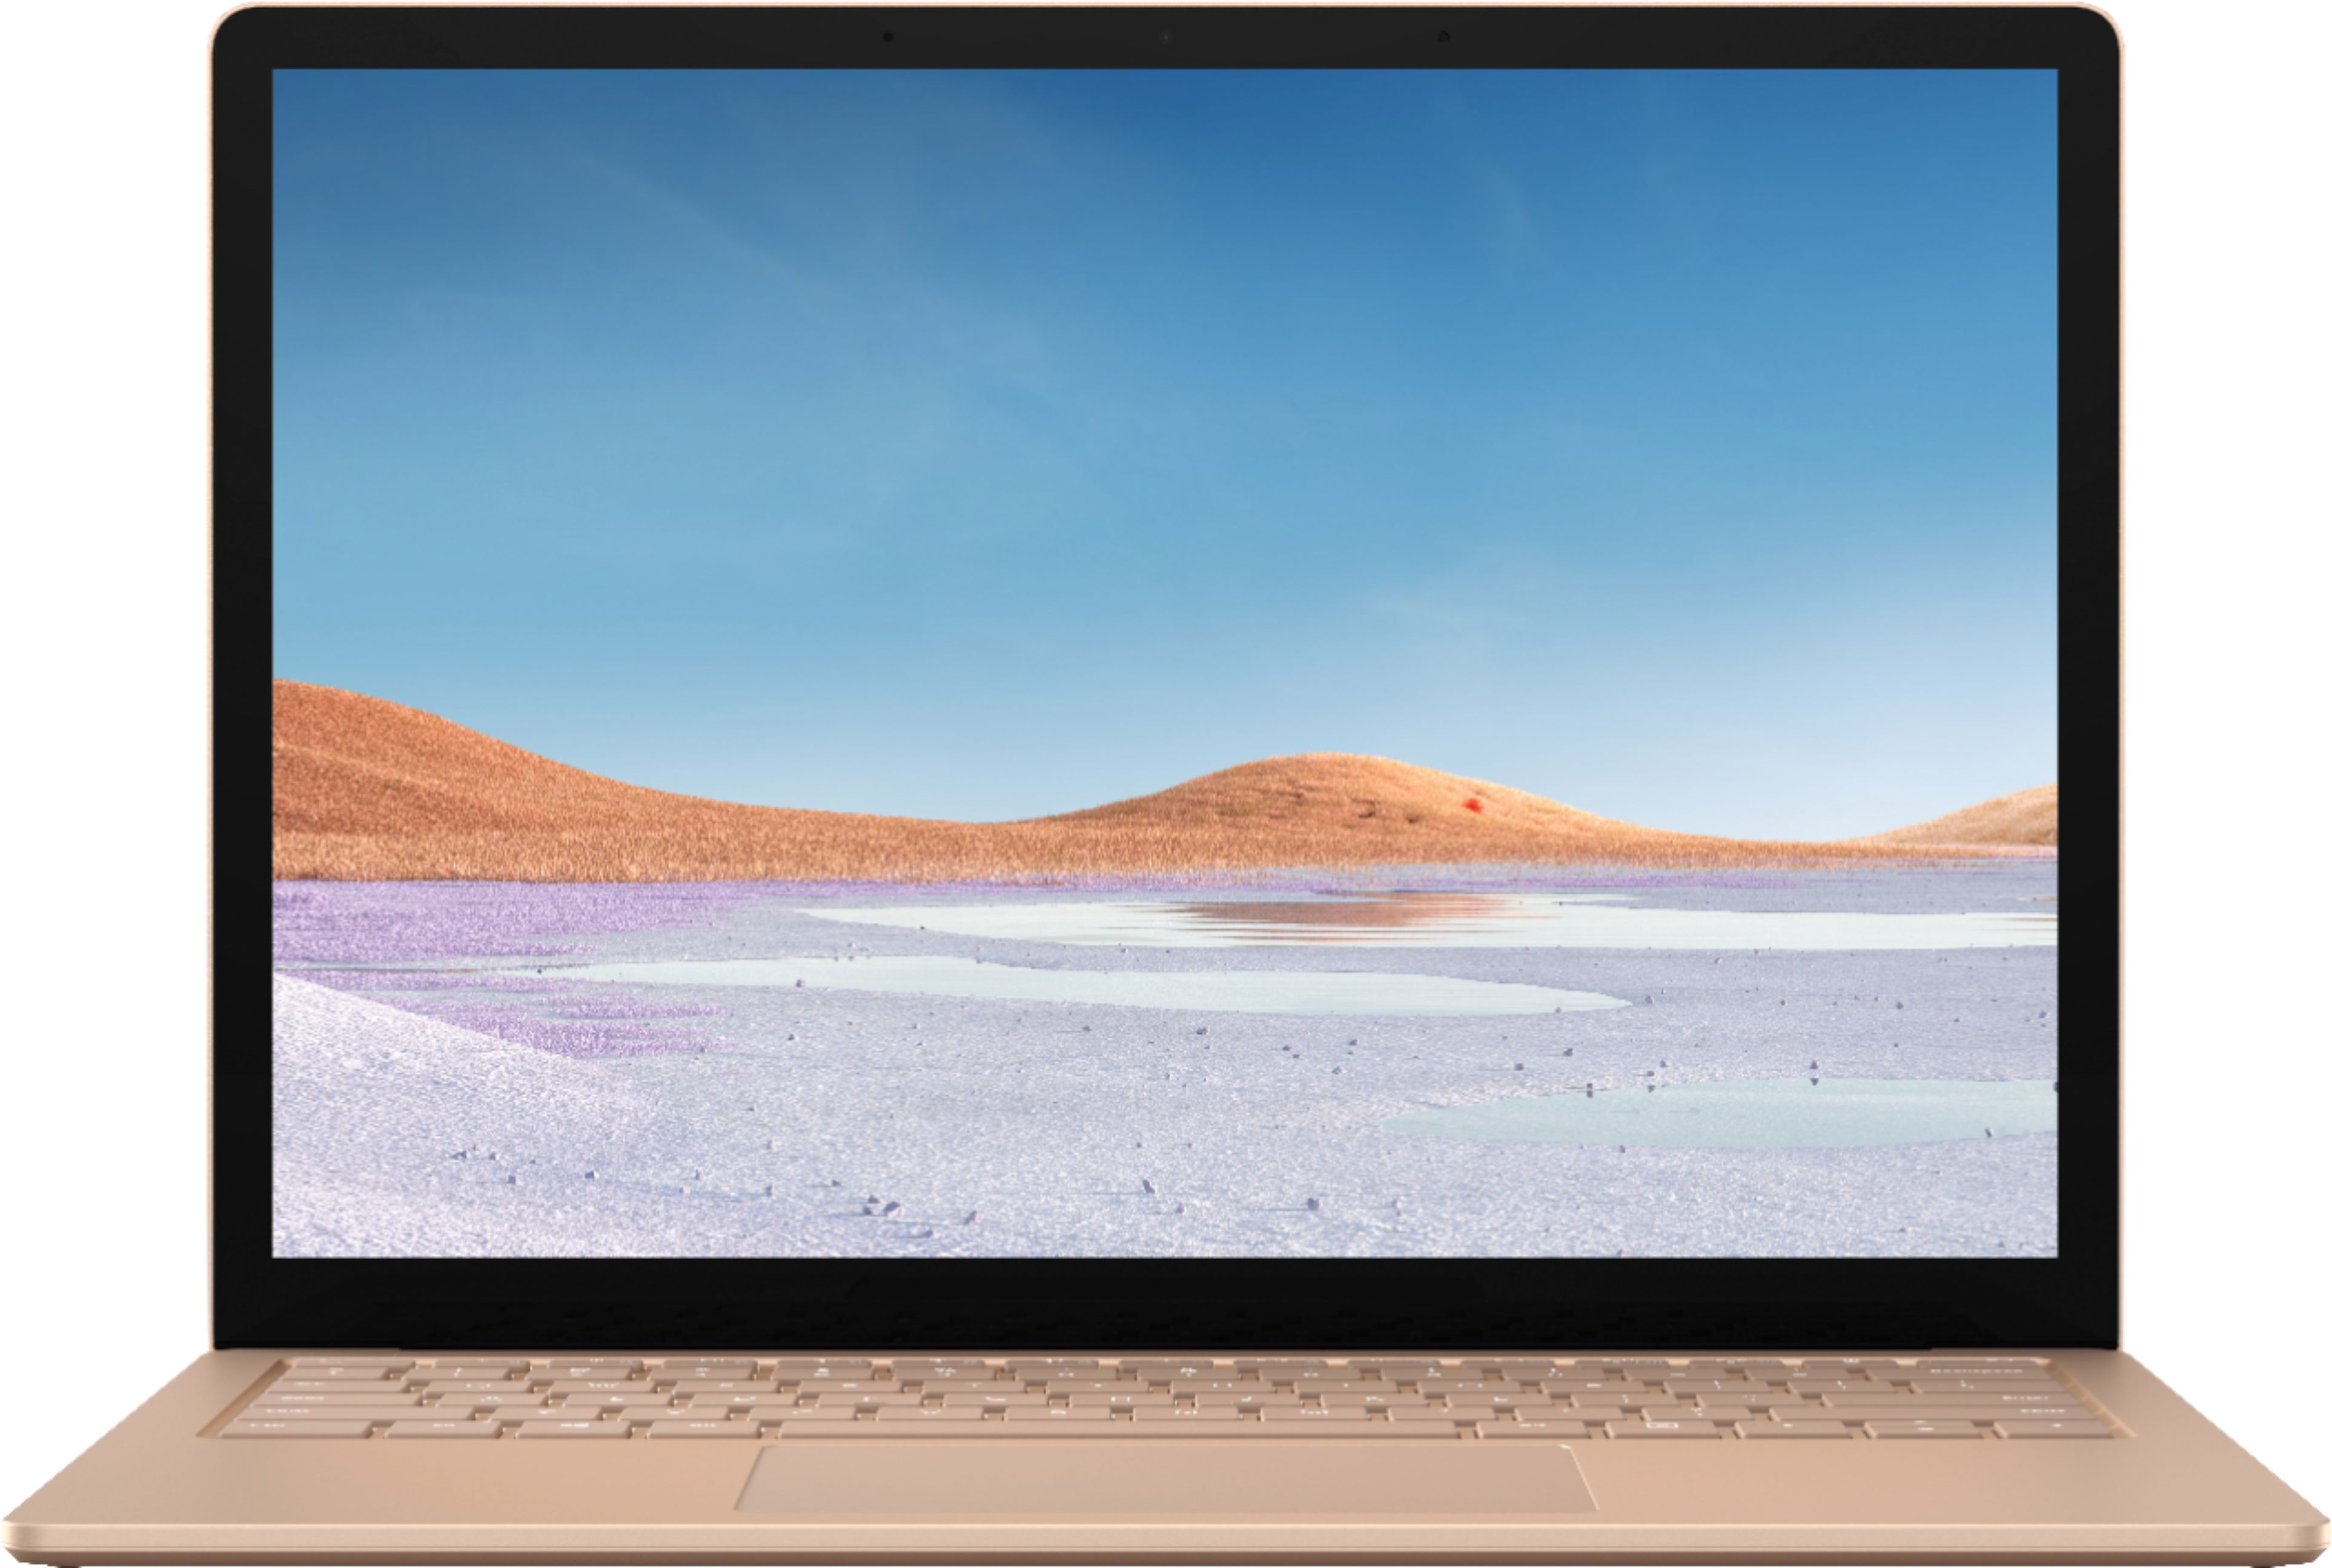 """Alt View Zoom 11. Microsoft - Surface Laptop 3 - 13.5"""" Touch-Screen - Intel Core i5 - 8GB Memory - 256GB Solid State Drive (Latest Model) - Sandstone."""